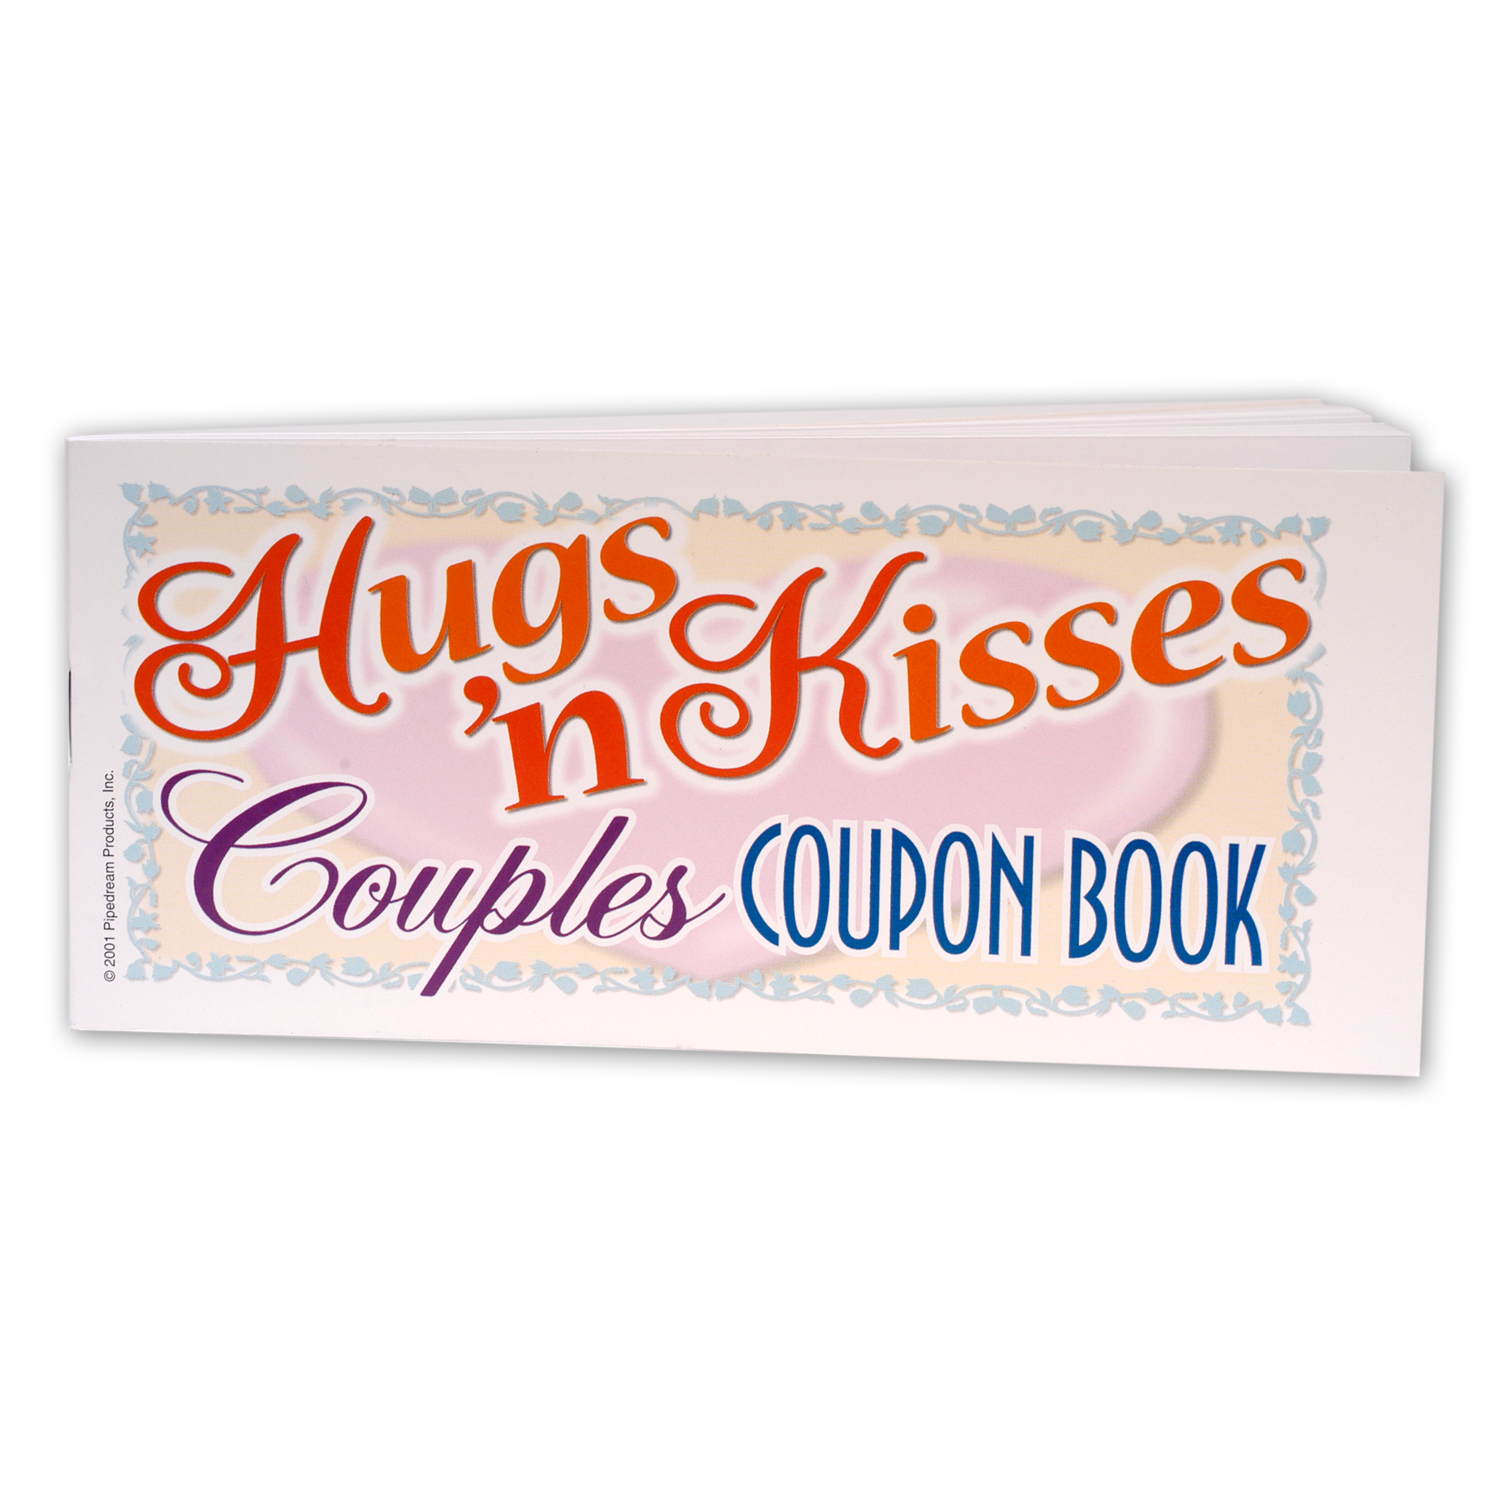 HUGS/ KISSES COUPON BOOK [EA]